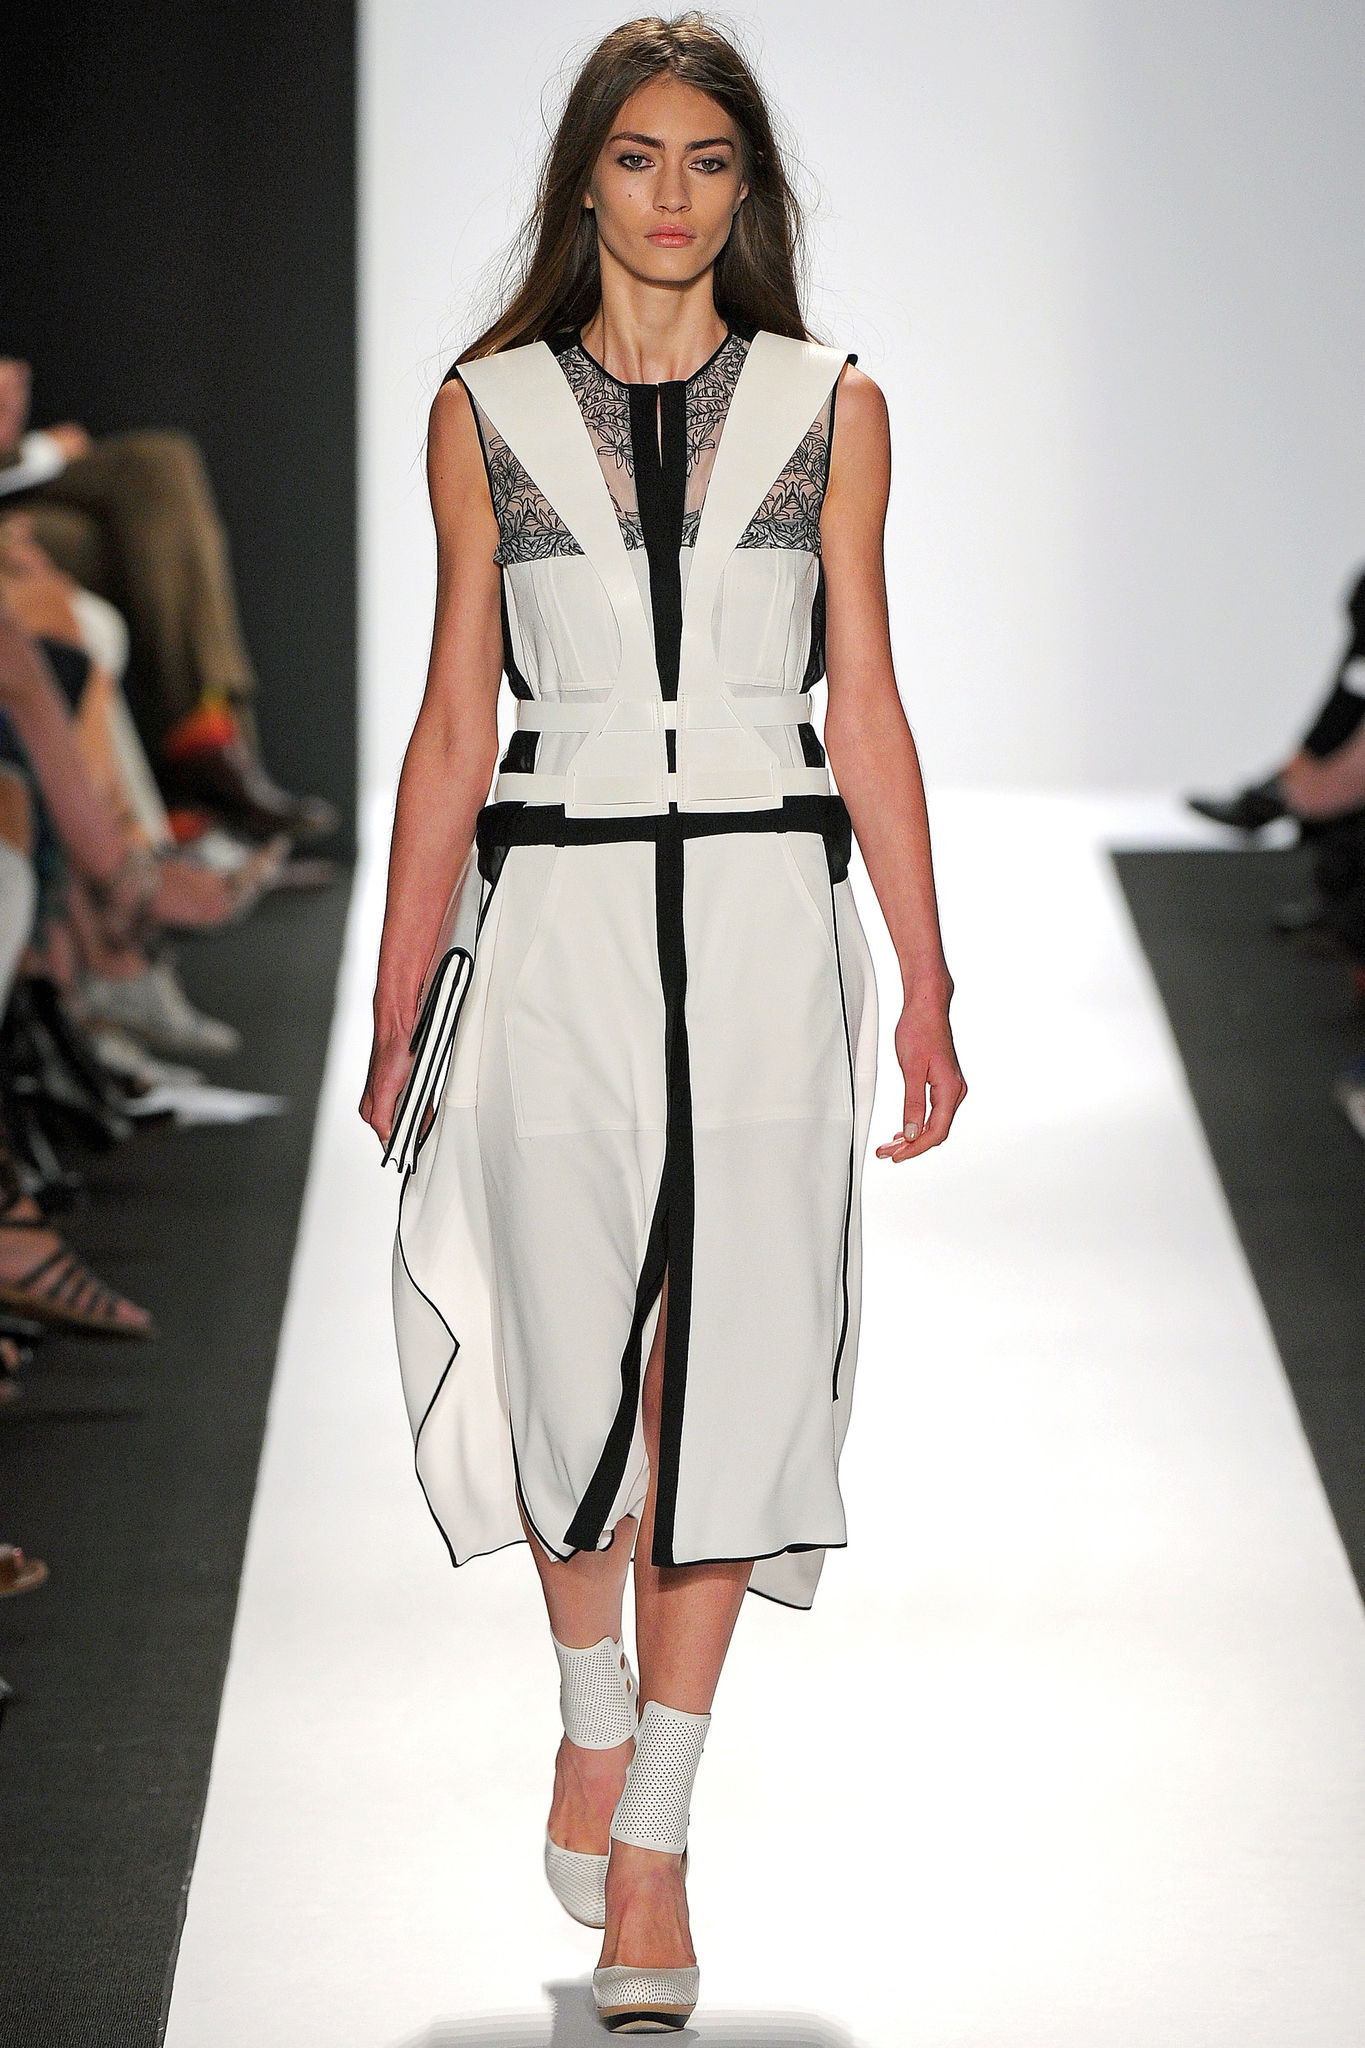 BCBG Max Azria Spring 2013 Collection New York Fashion Week